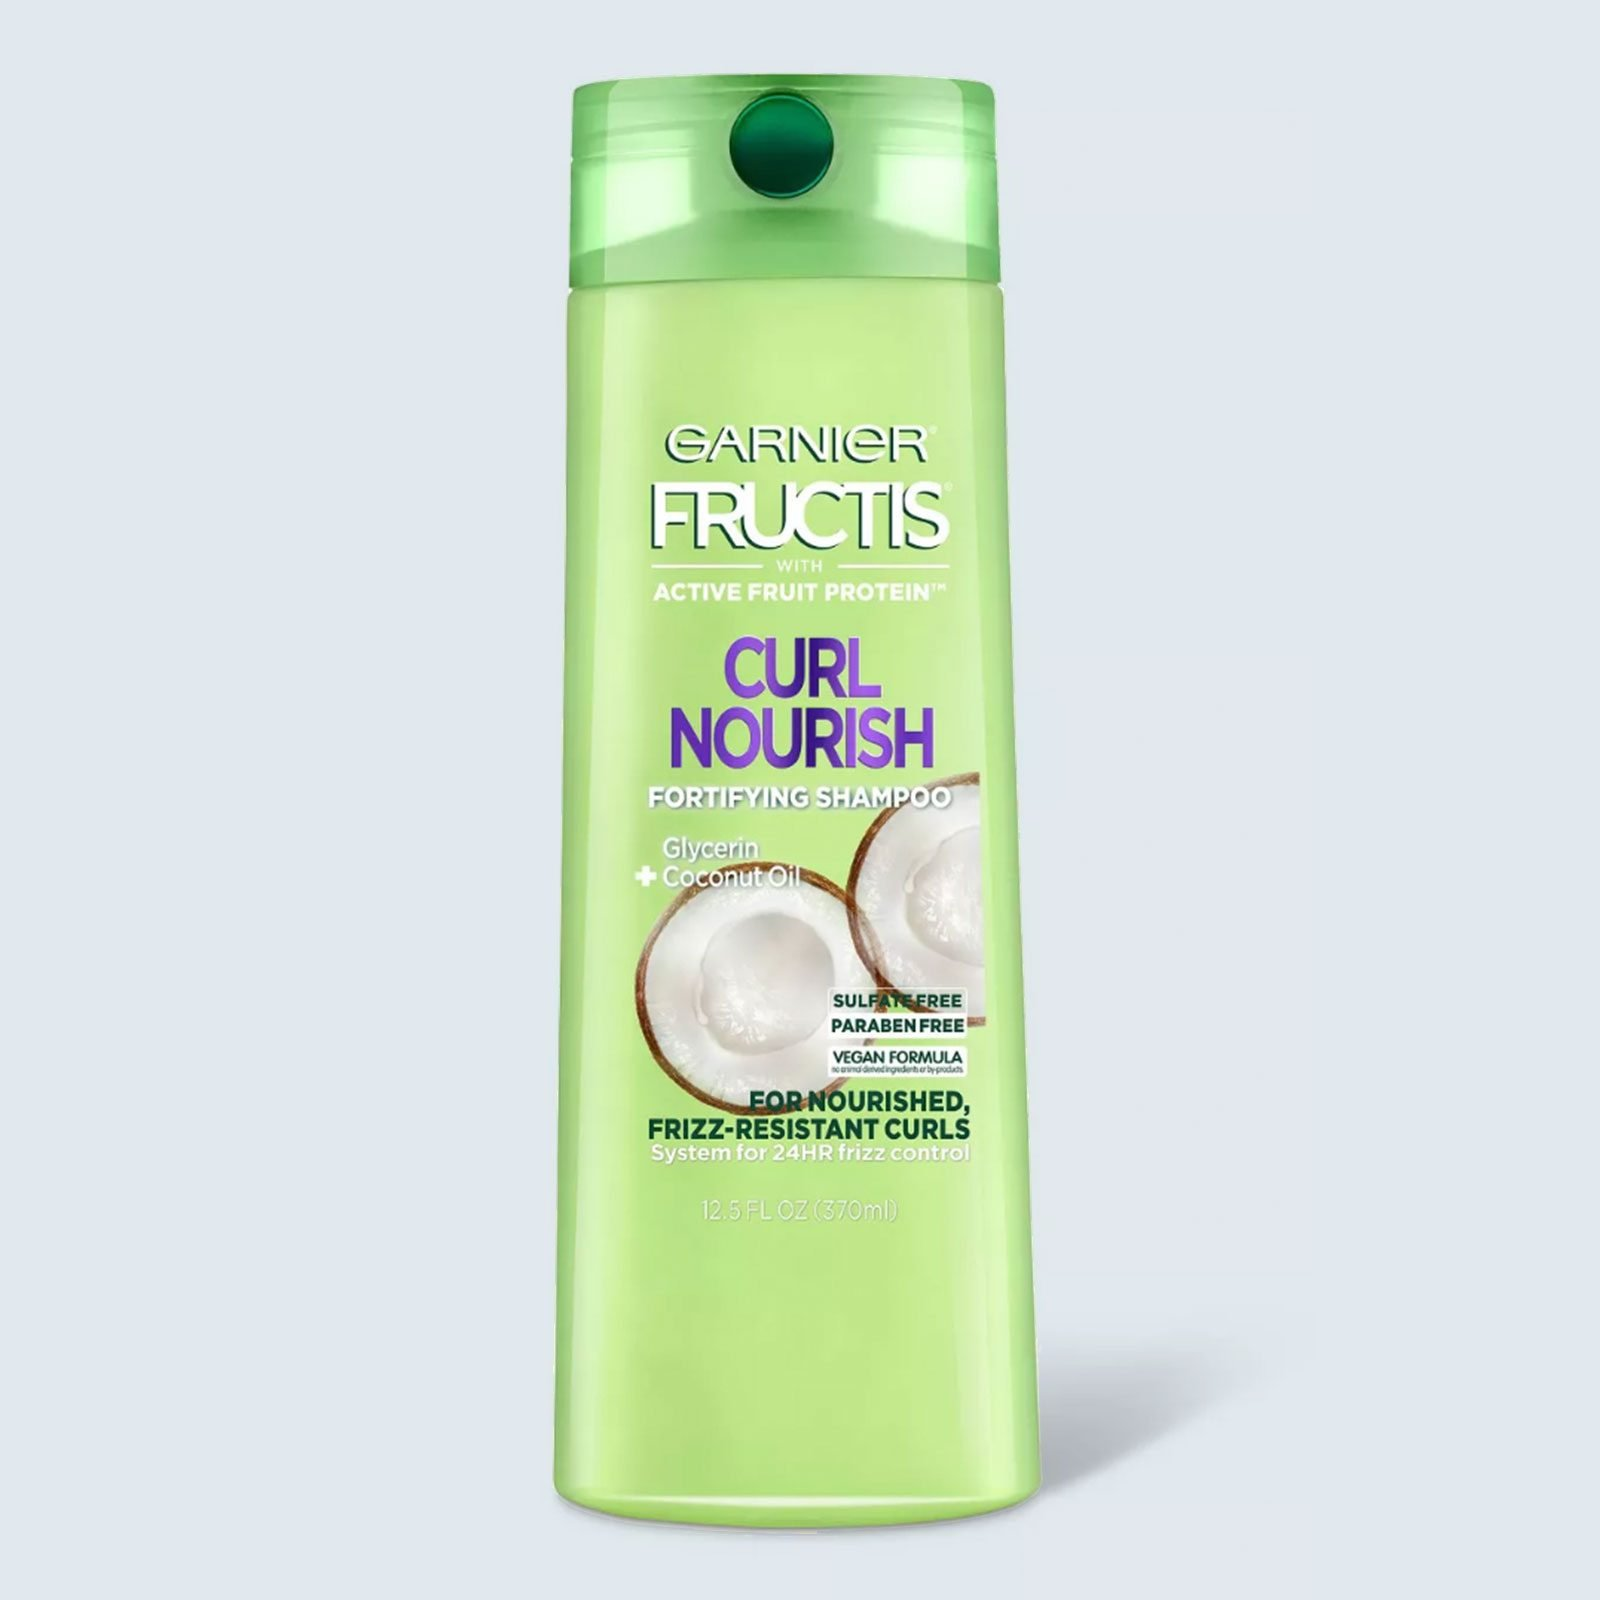 Best budget shampoo for curly hair: Garnier Curl Nourish